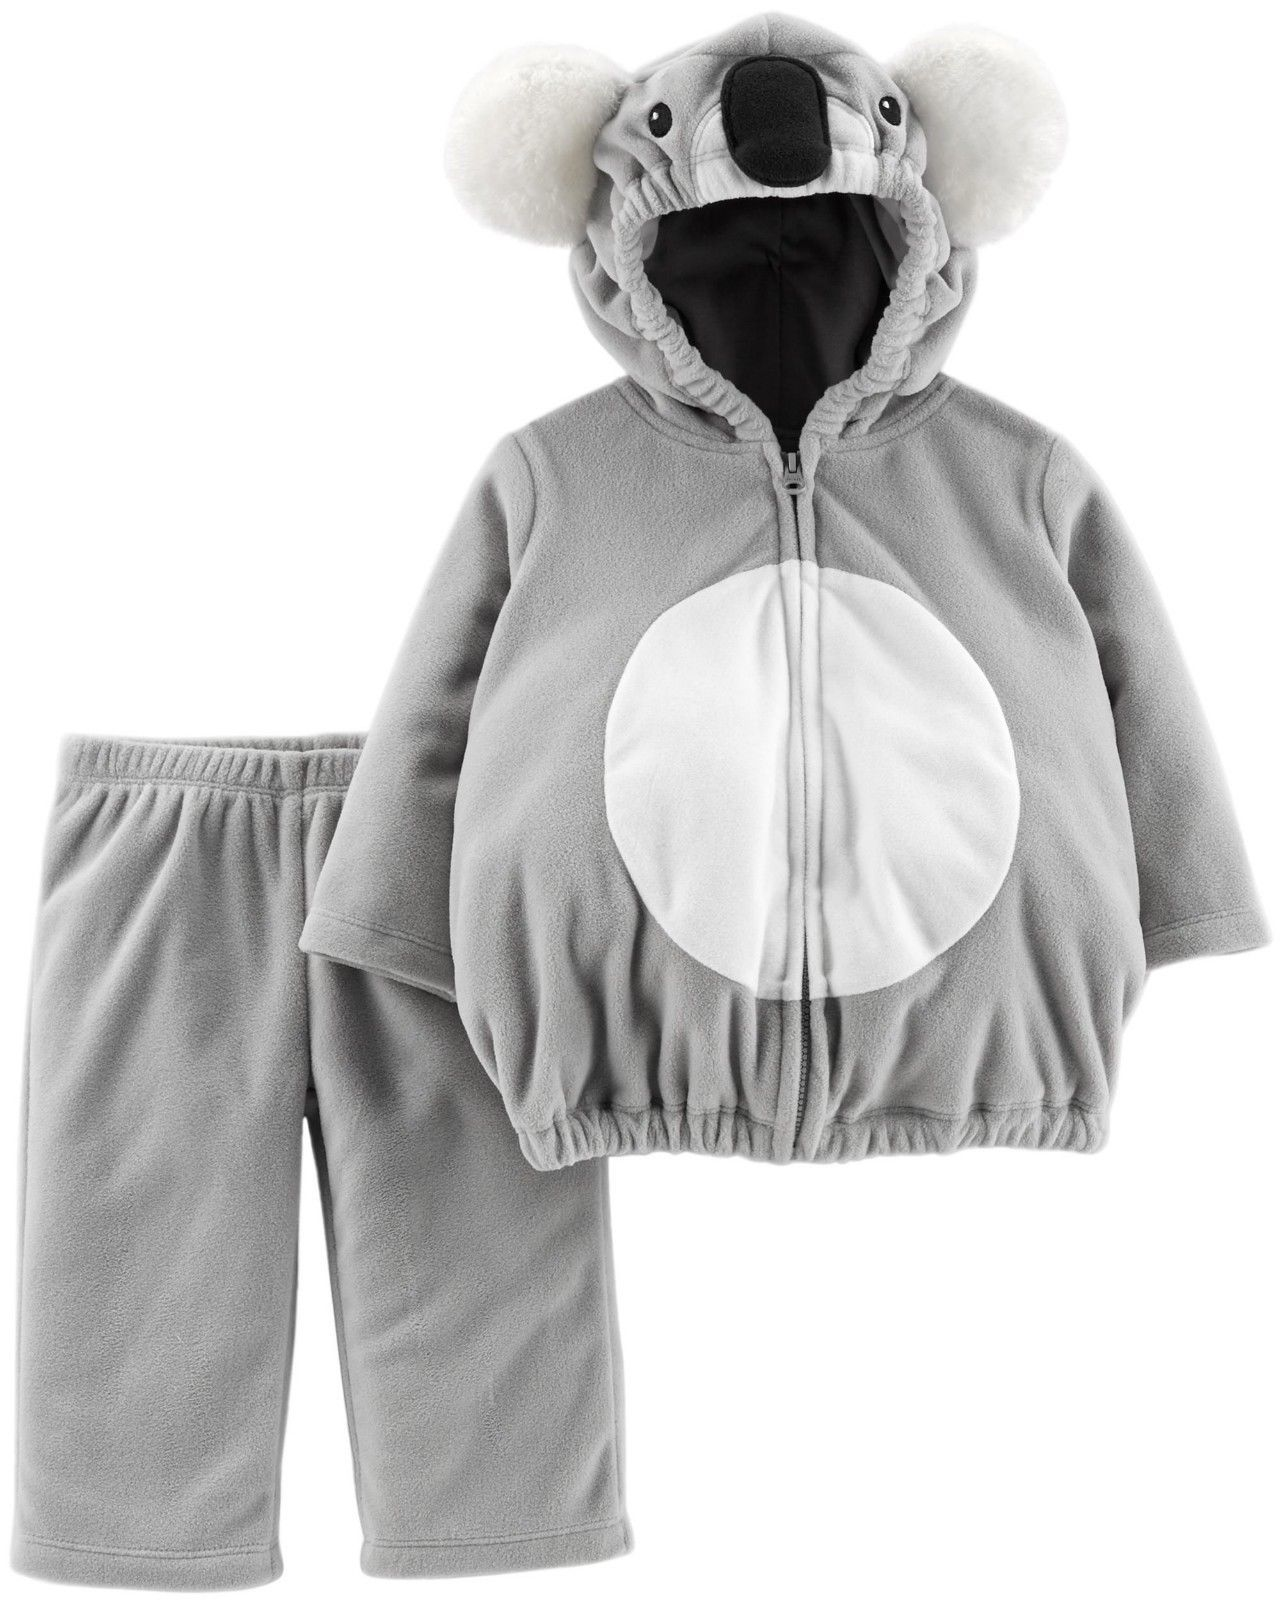 NEW NWT Carters Koala Halloween Costume Boy or Girl 12 18 or 24 Month